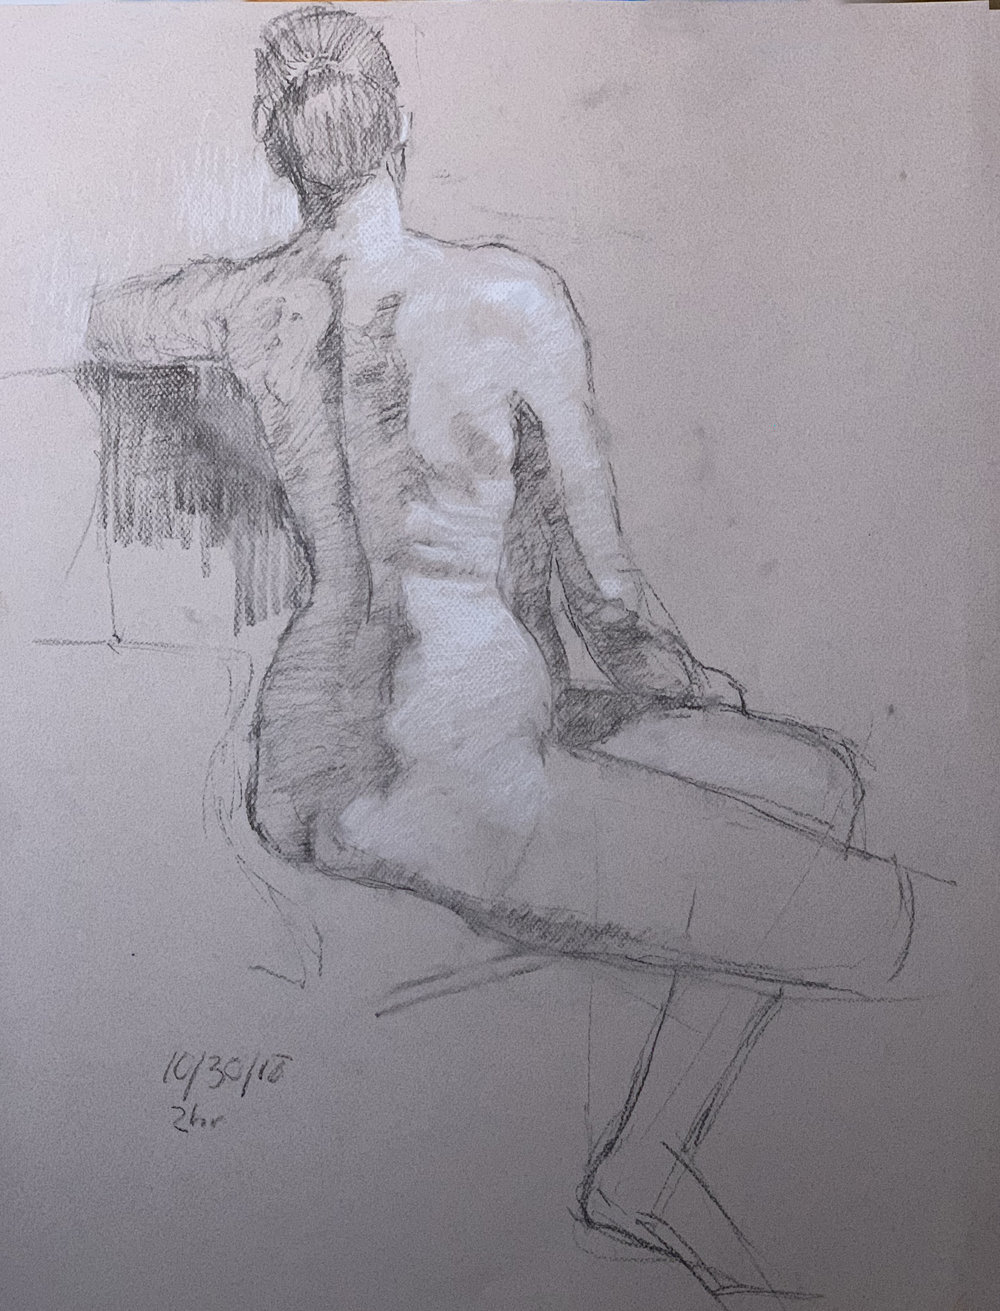 Catherine charcoal and pastel on Canson paper 10/30/18